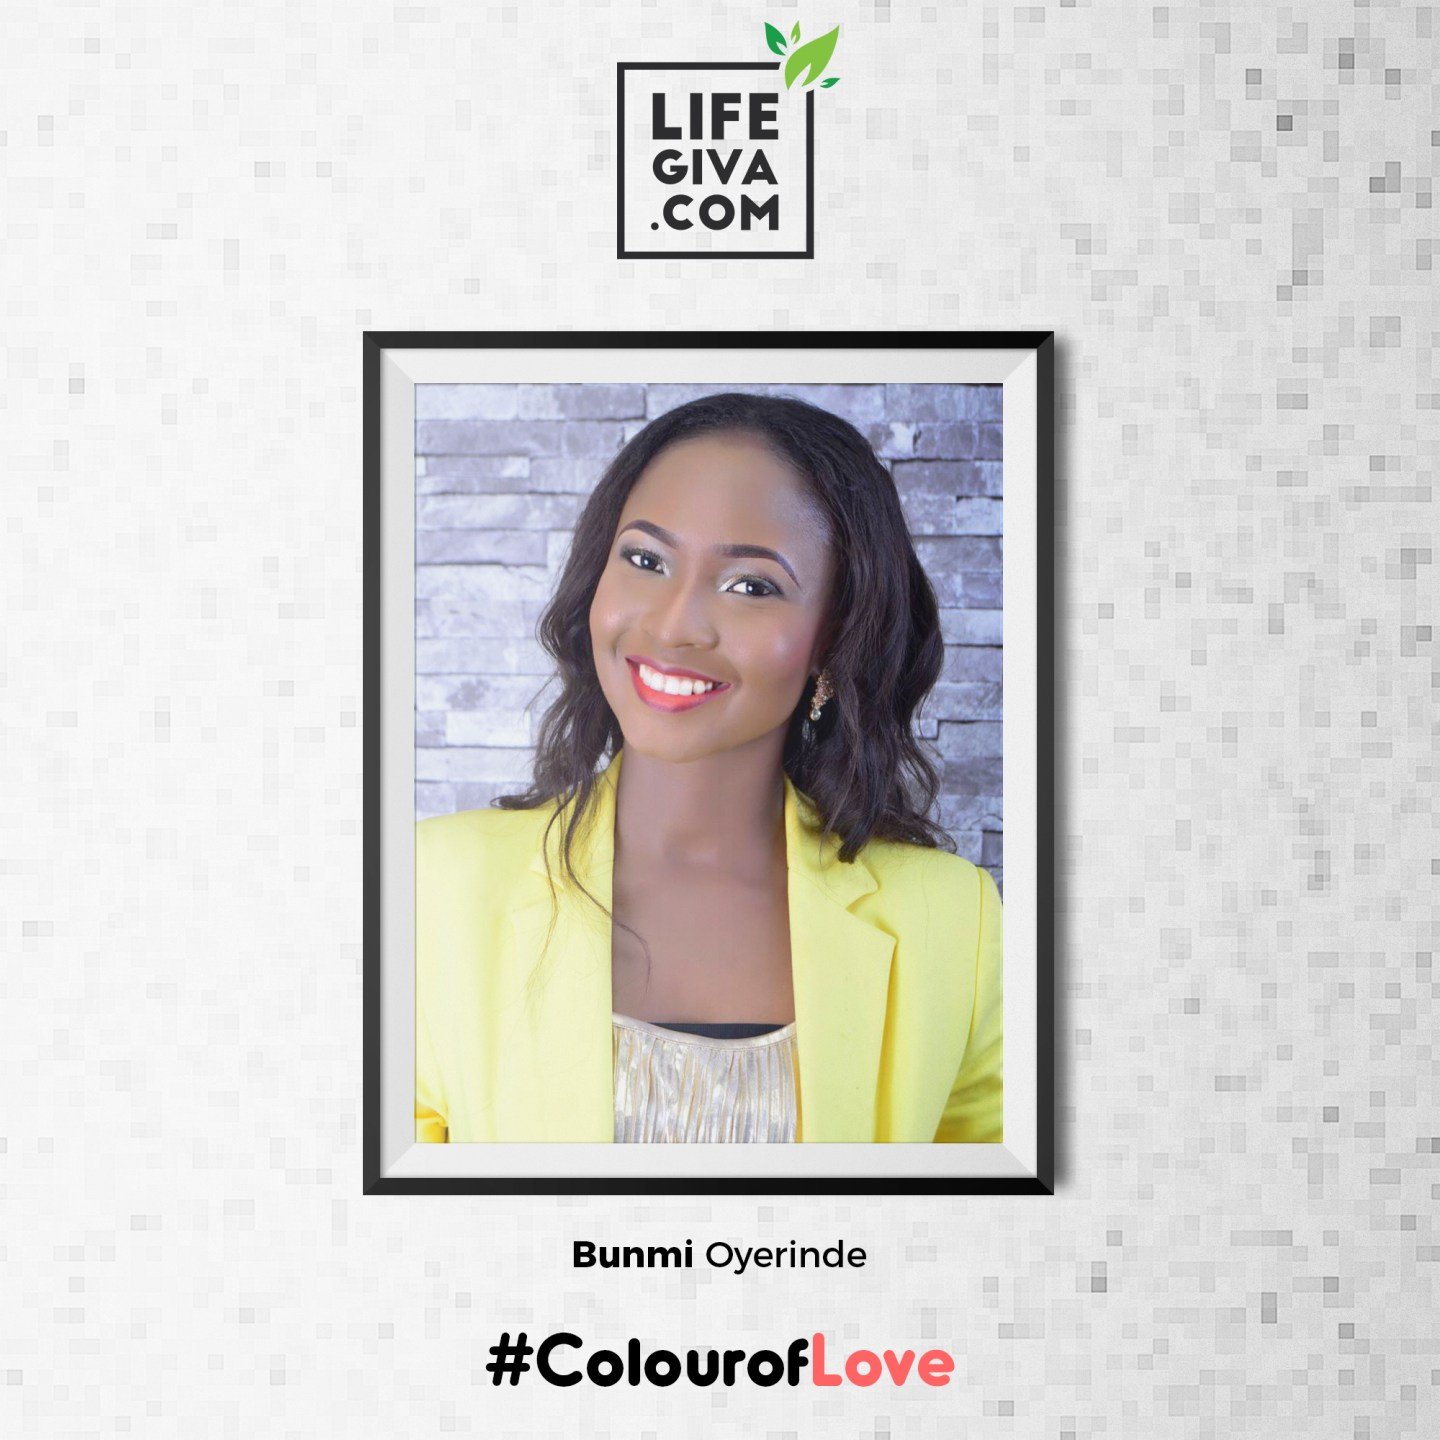 Love Cast in Colours - Bunmi Oyerinde #ColourOfLove